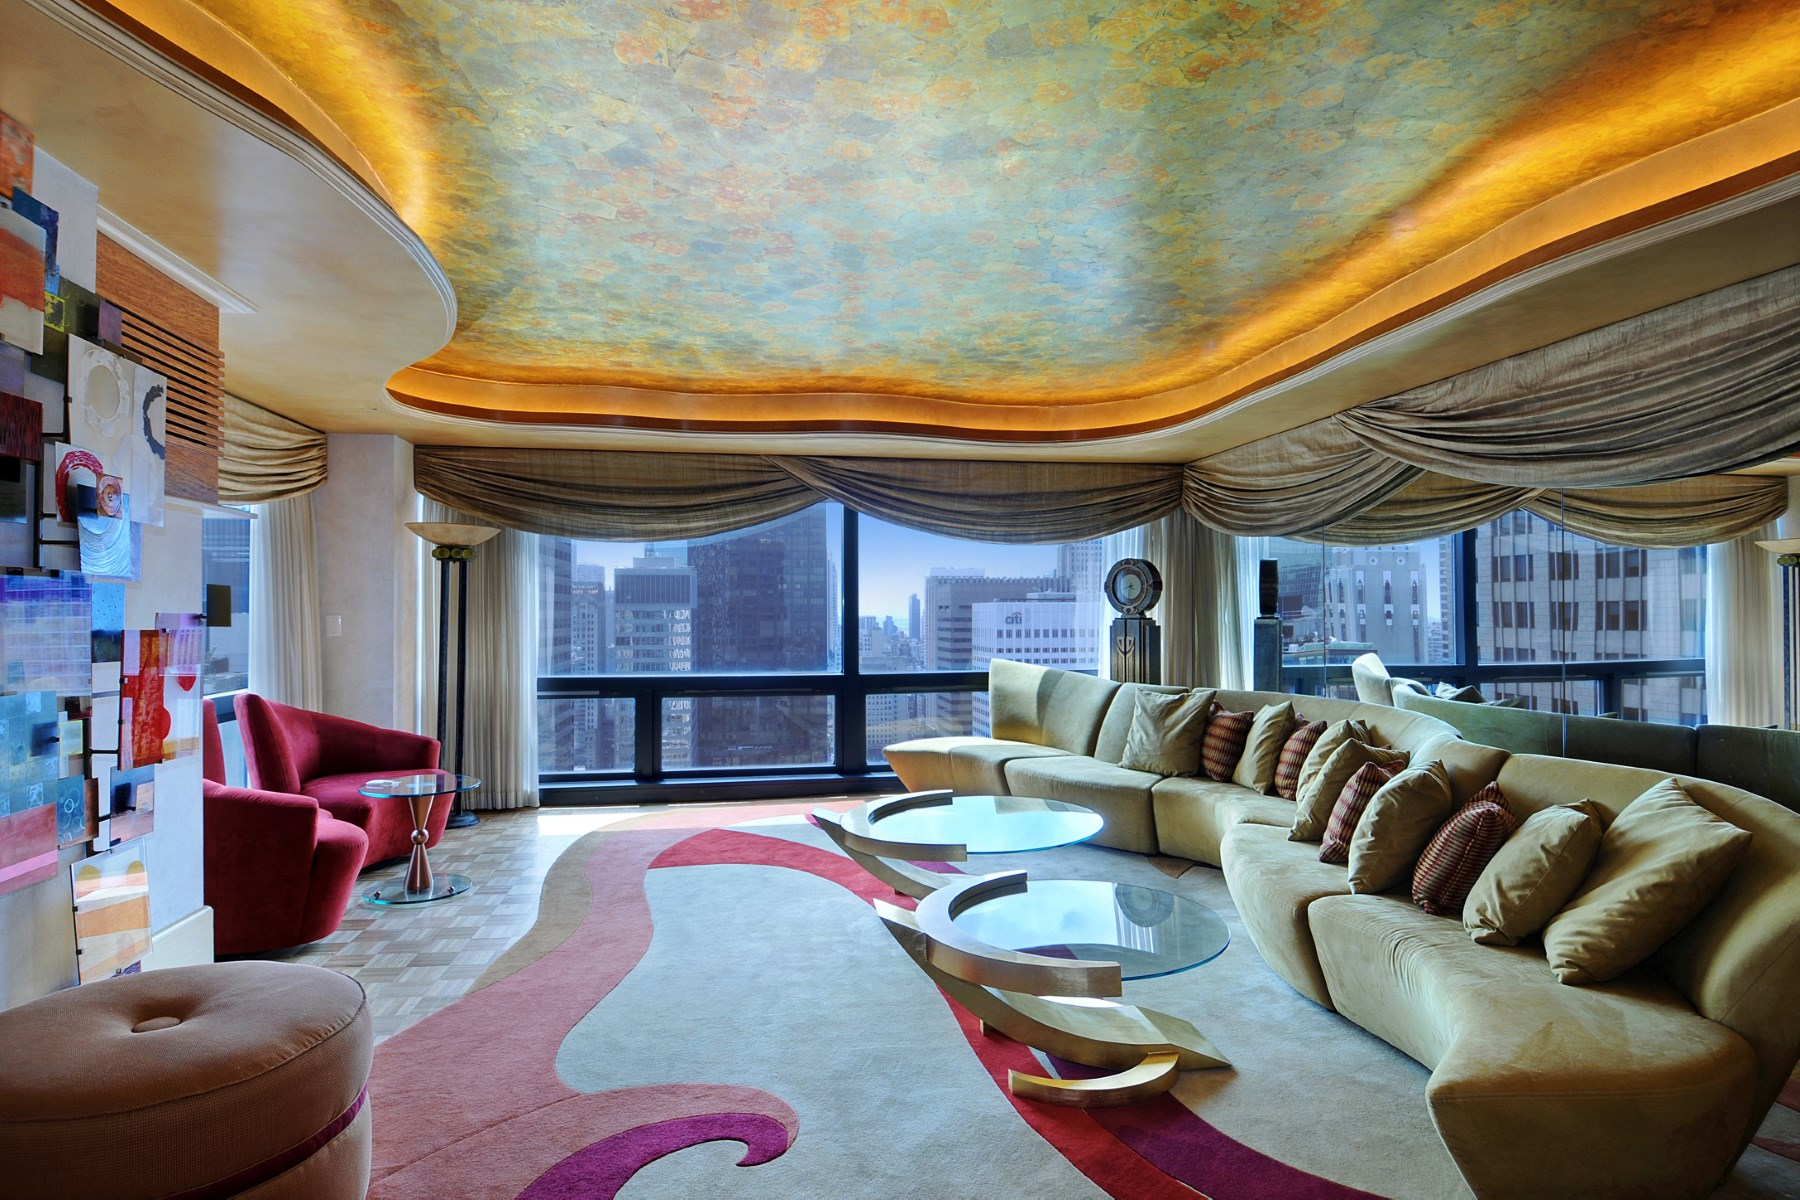 Condominium for Sale at Trump Tower 721 Fifth Avenue Apt 50b Midtown East, New York, New York 10022 United States